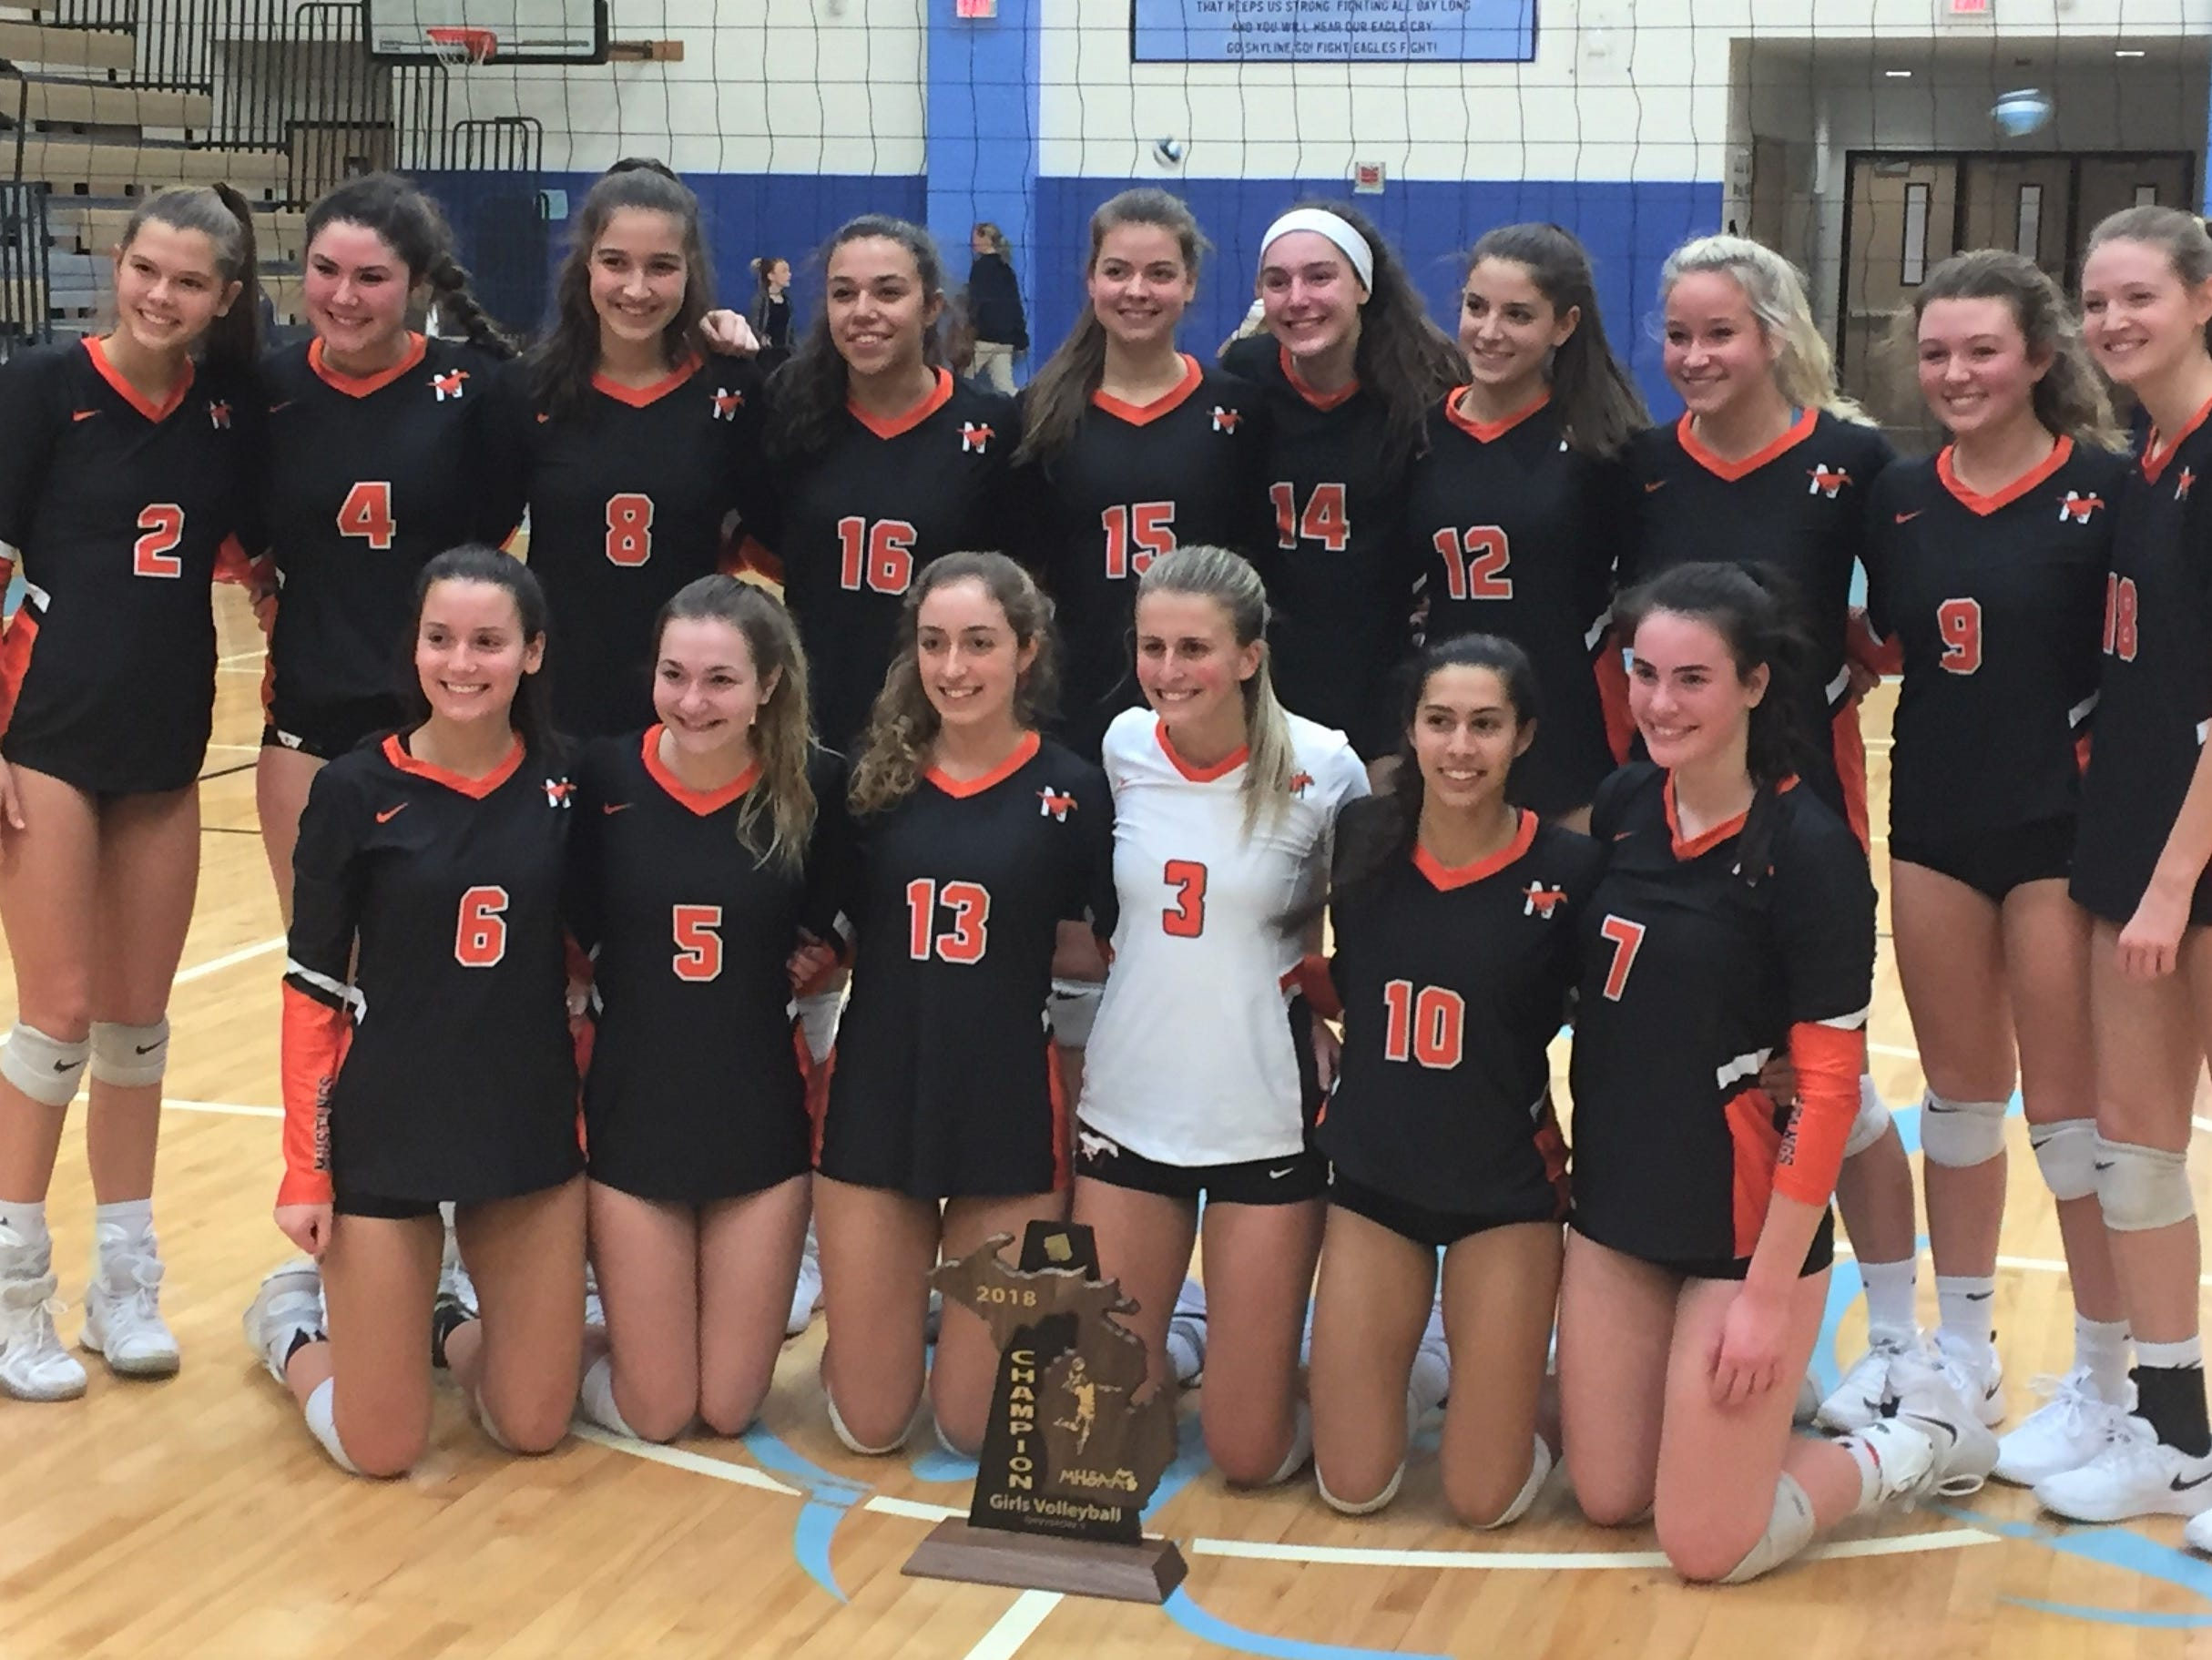 Northville soars past Skyline for D1 regional girls volleyball crown